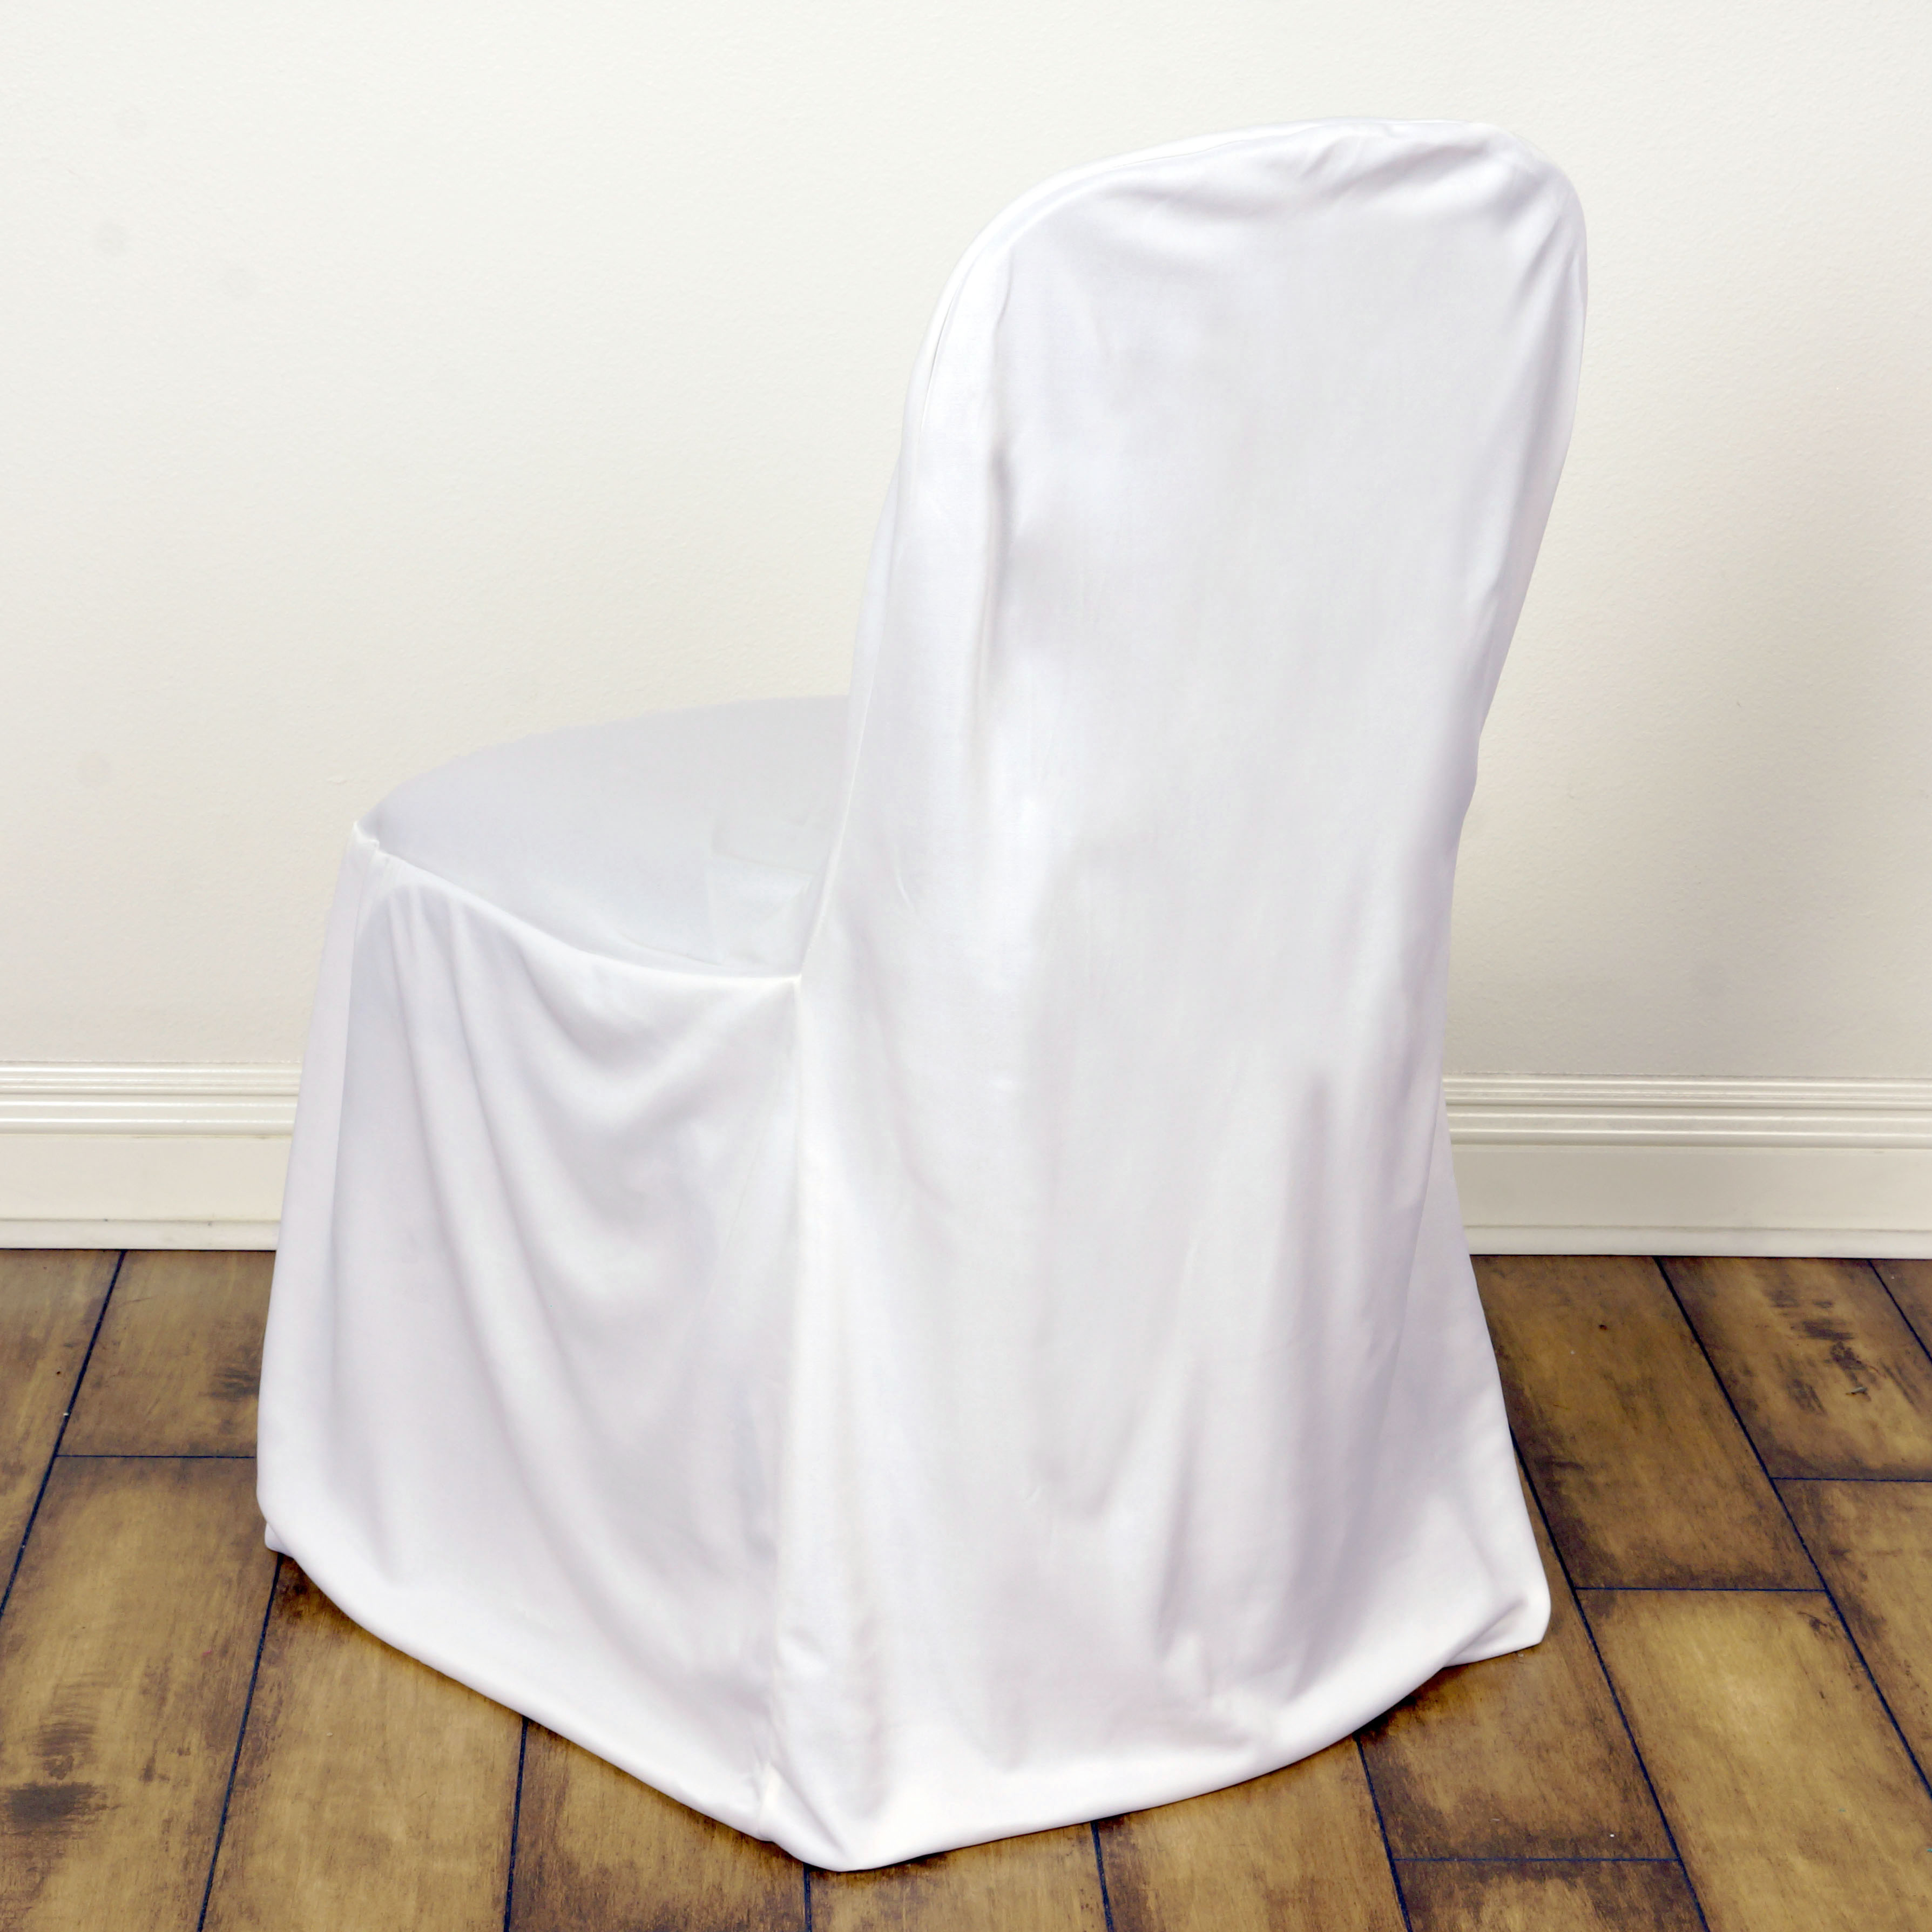 Stretch Scuba Banquet CHAIR COVERS Wedding Party Supplies